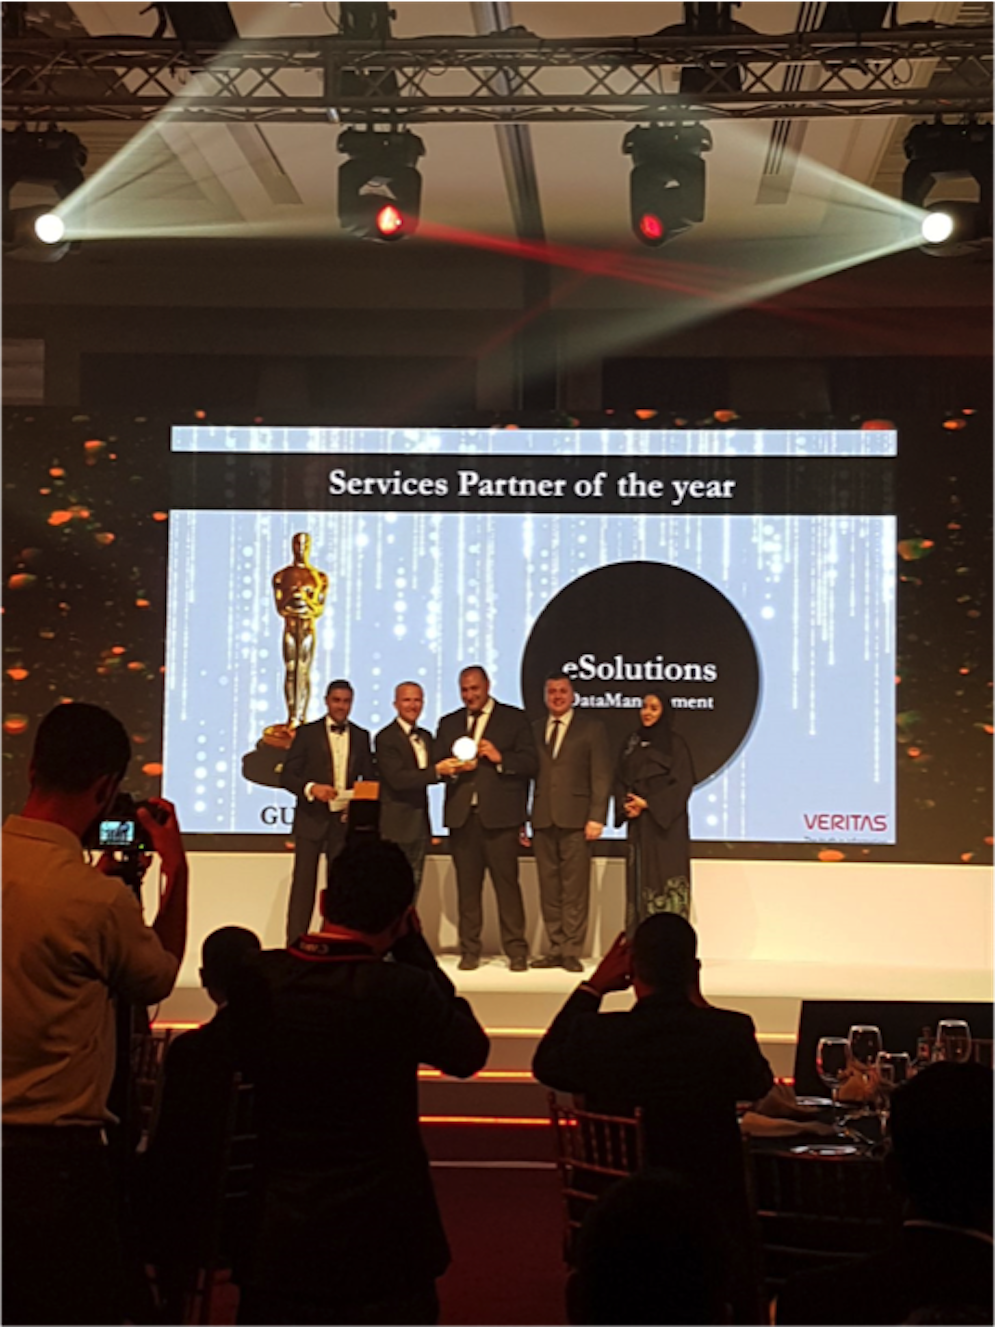 eSolutions Data Management wins 2018 Veritas Services Partner of the Year